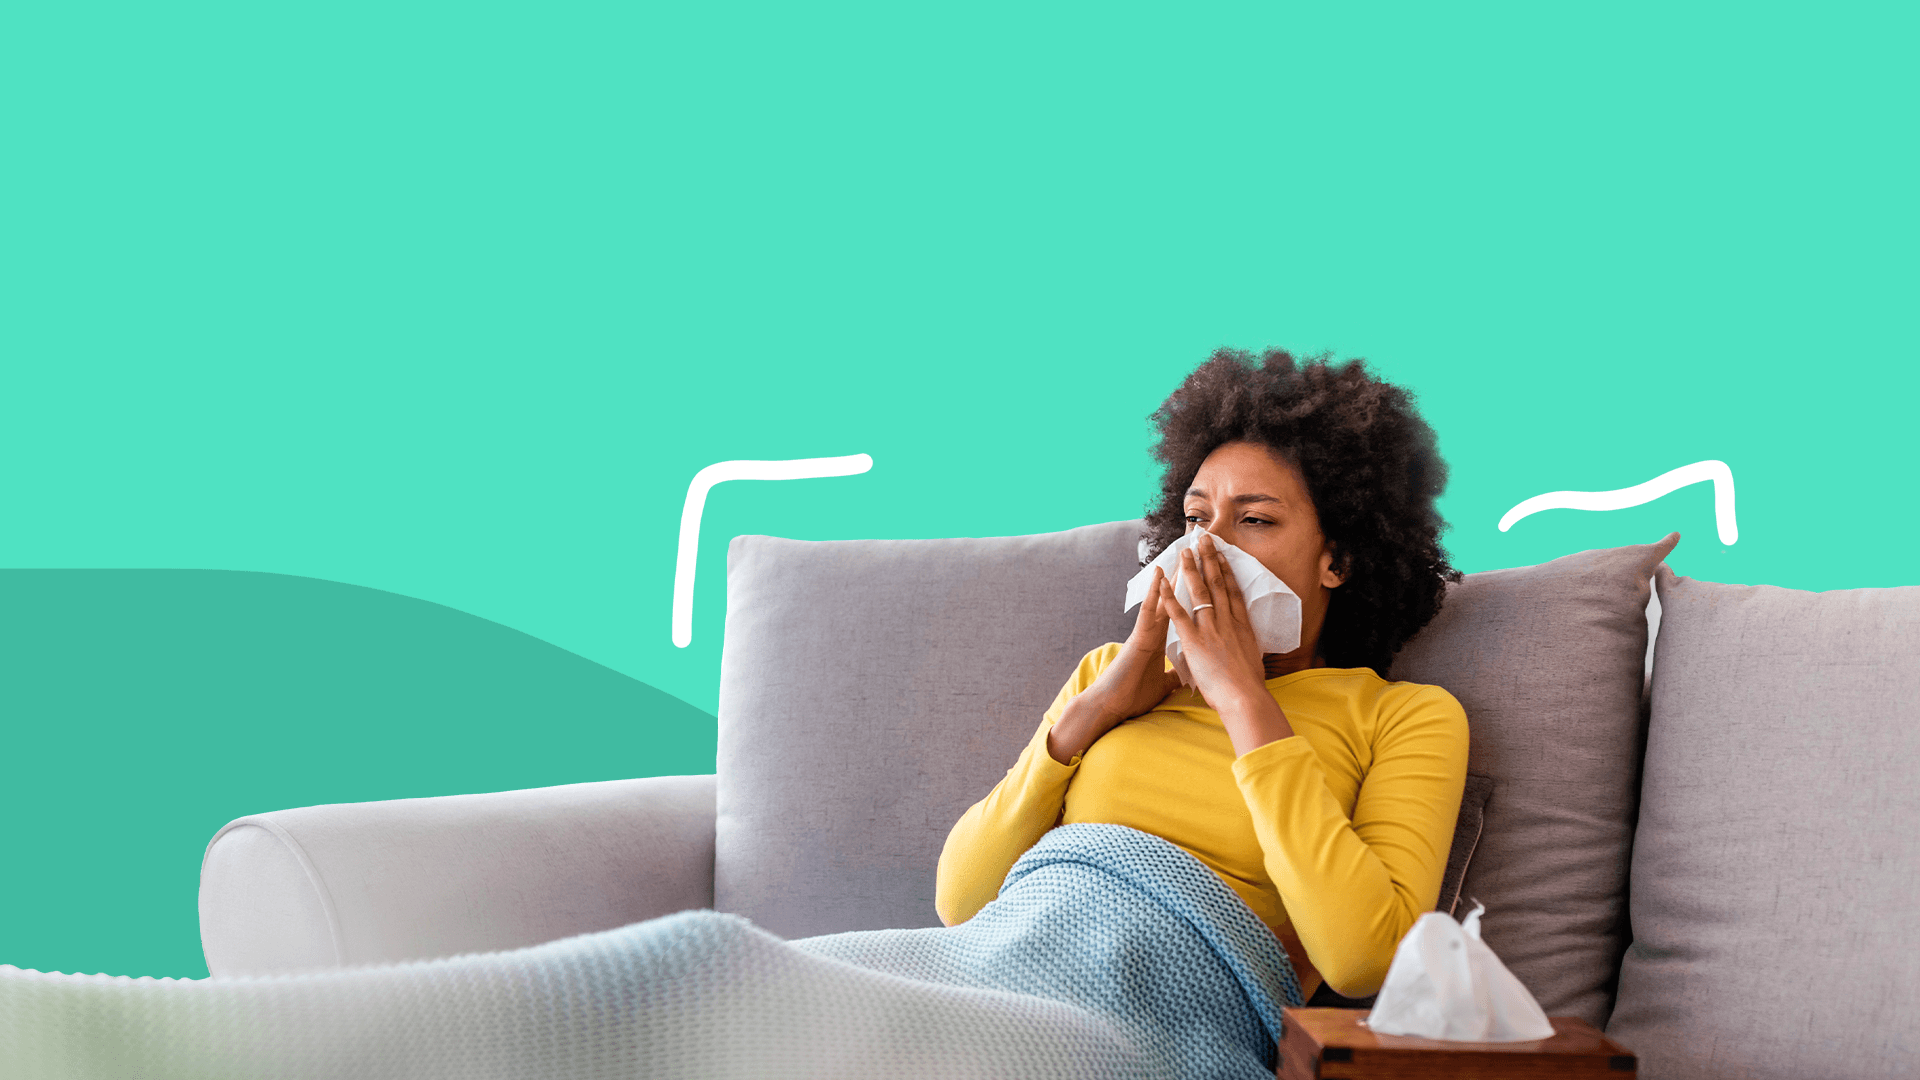 Flu season 2020: Why the flu shot is more important than ever